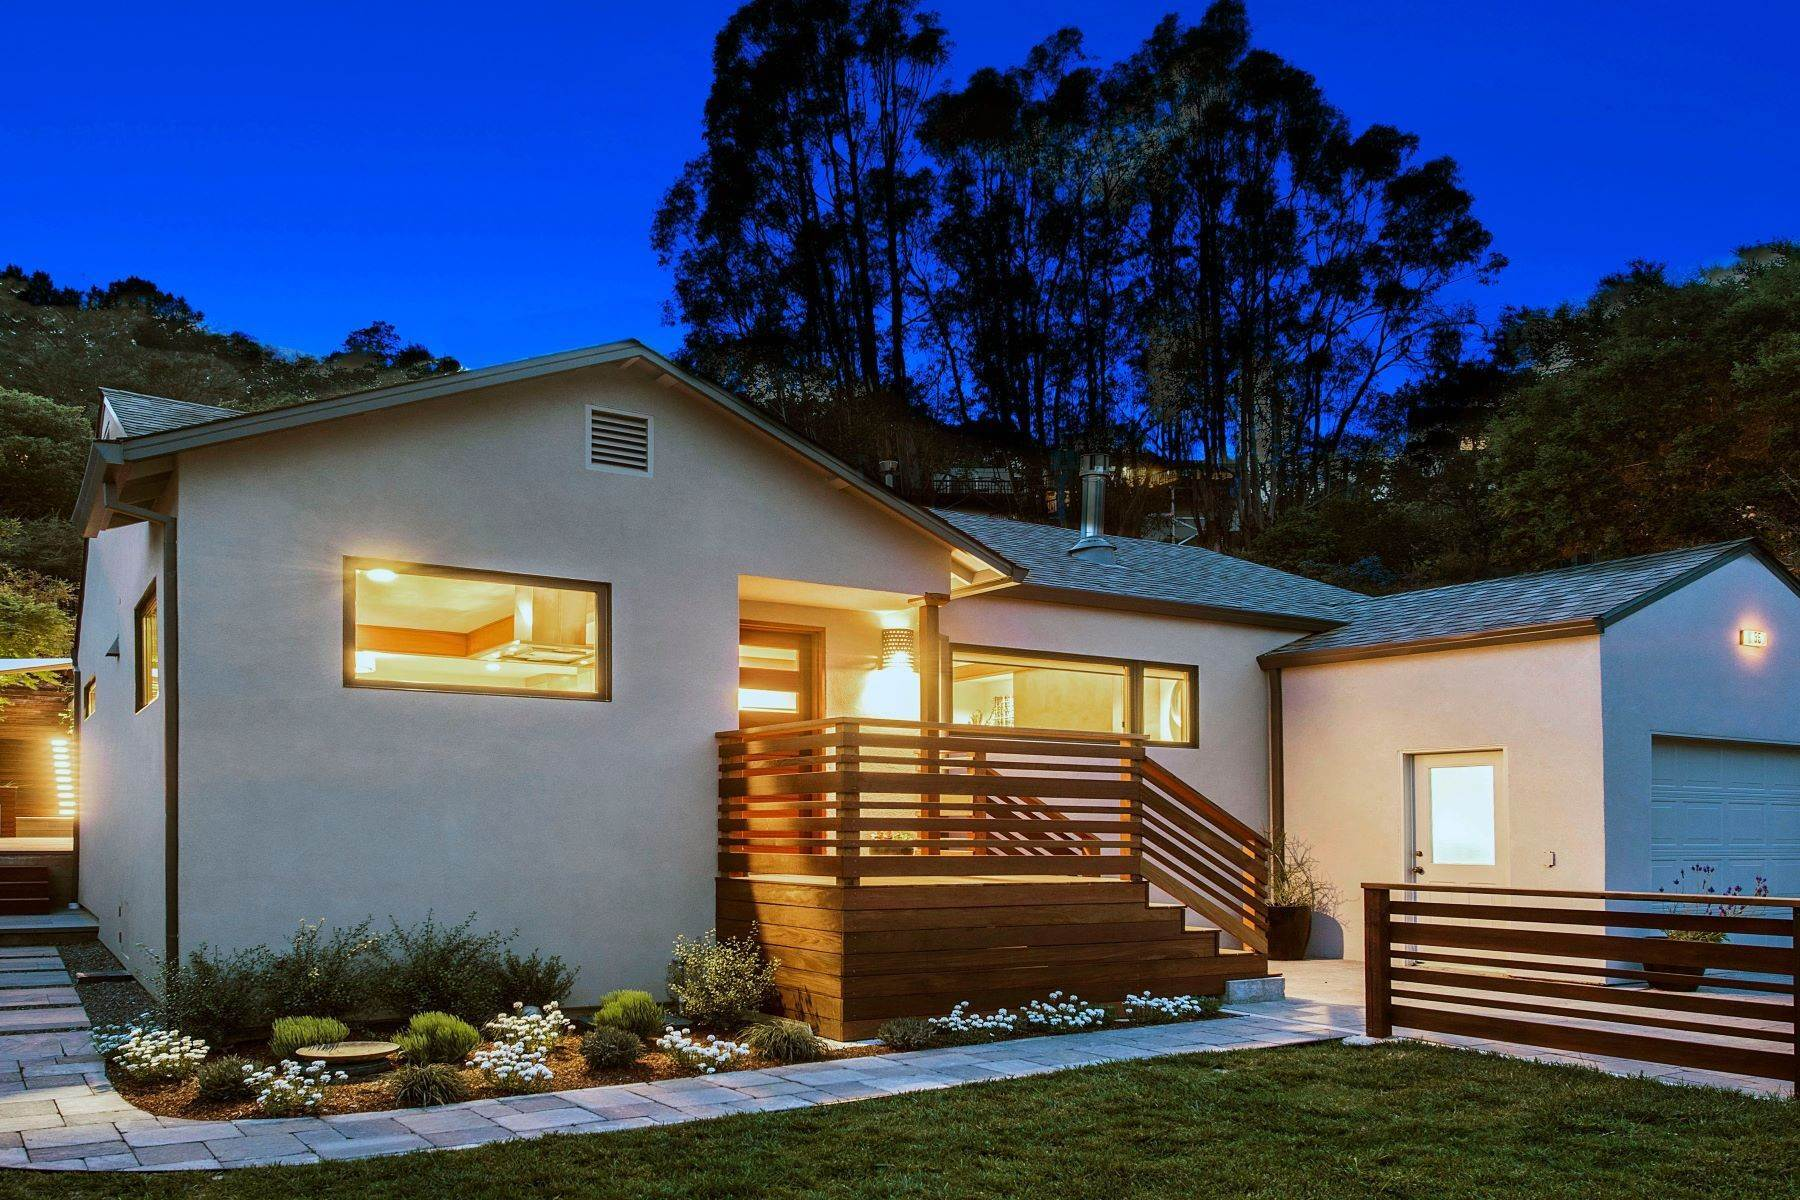 Single Family Homes for Sale at Warm and Appealing Modern Craftsman 55 Durham Road San Anselmo, California 94960 United States